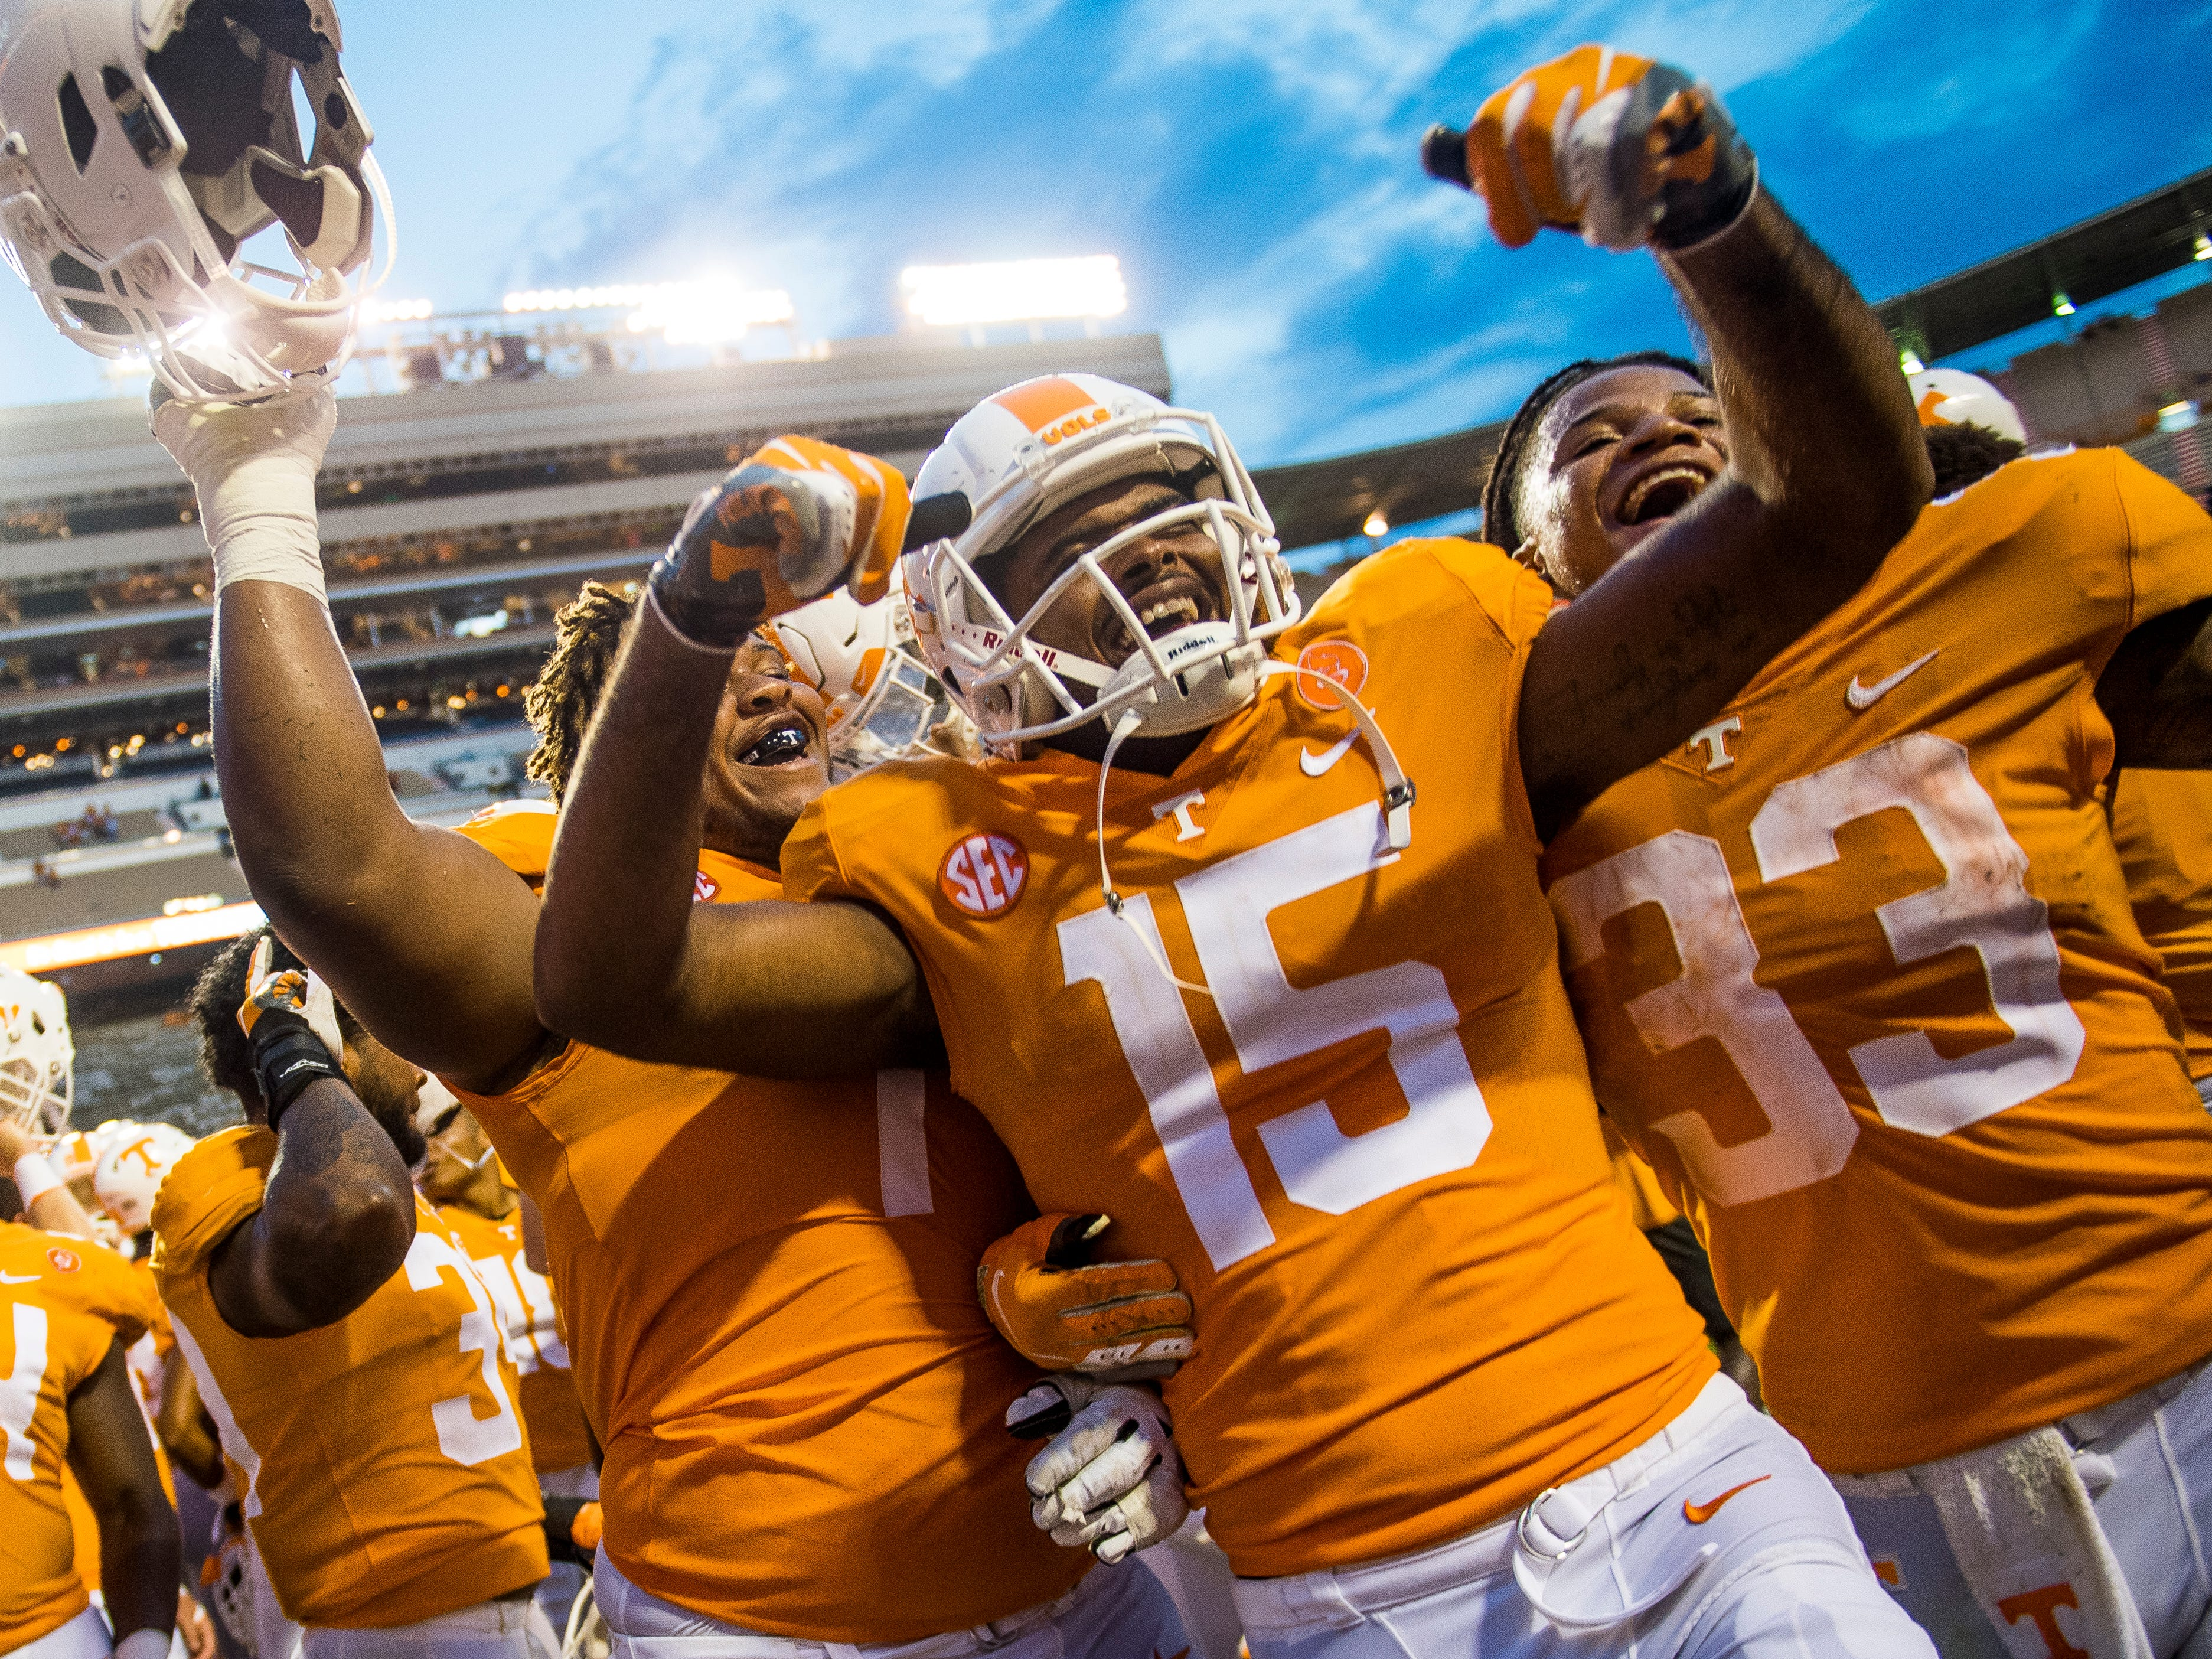 Tennessee offensive lineman K'Rojhn Calbert (74), Tennessee wide receiver Jauan Jennings (15) and Tennessee running back Jeremy Banks (33) celebrate the Tennessee Volunteers' 59-3 victory against ETSU in Neyland Stadium on Saturday, Sept. 8, 2018.